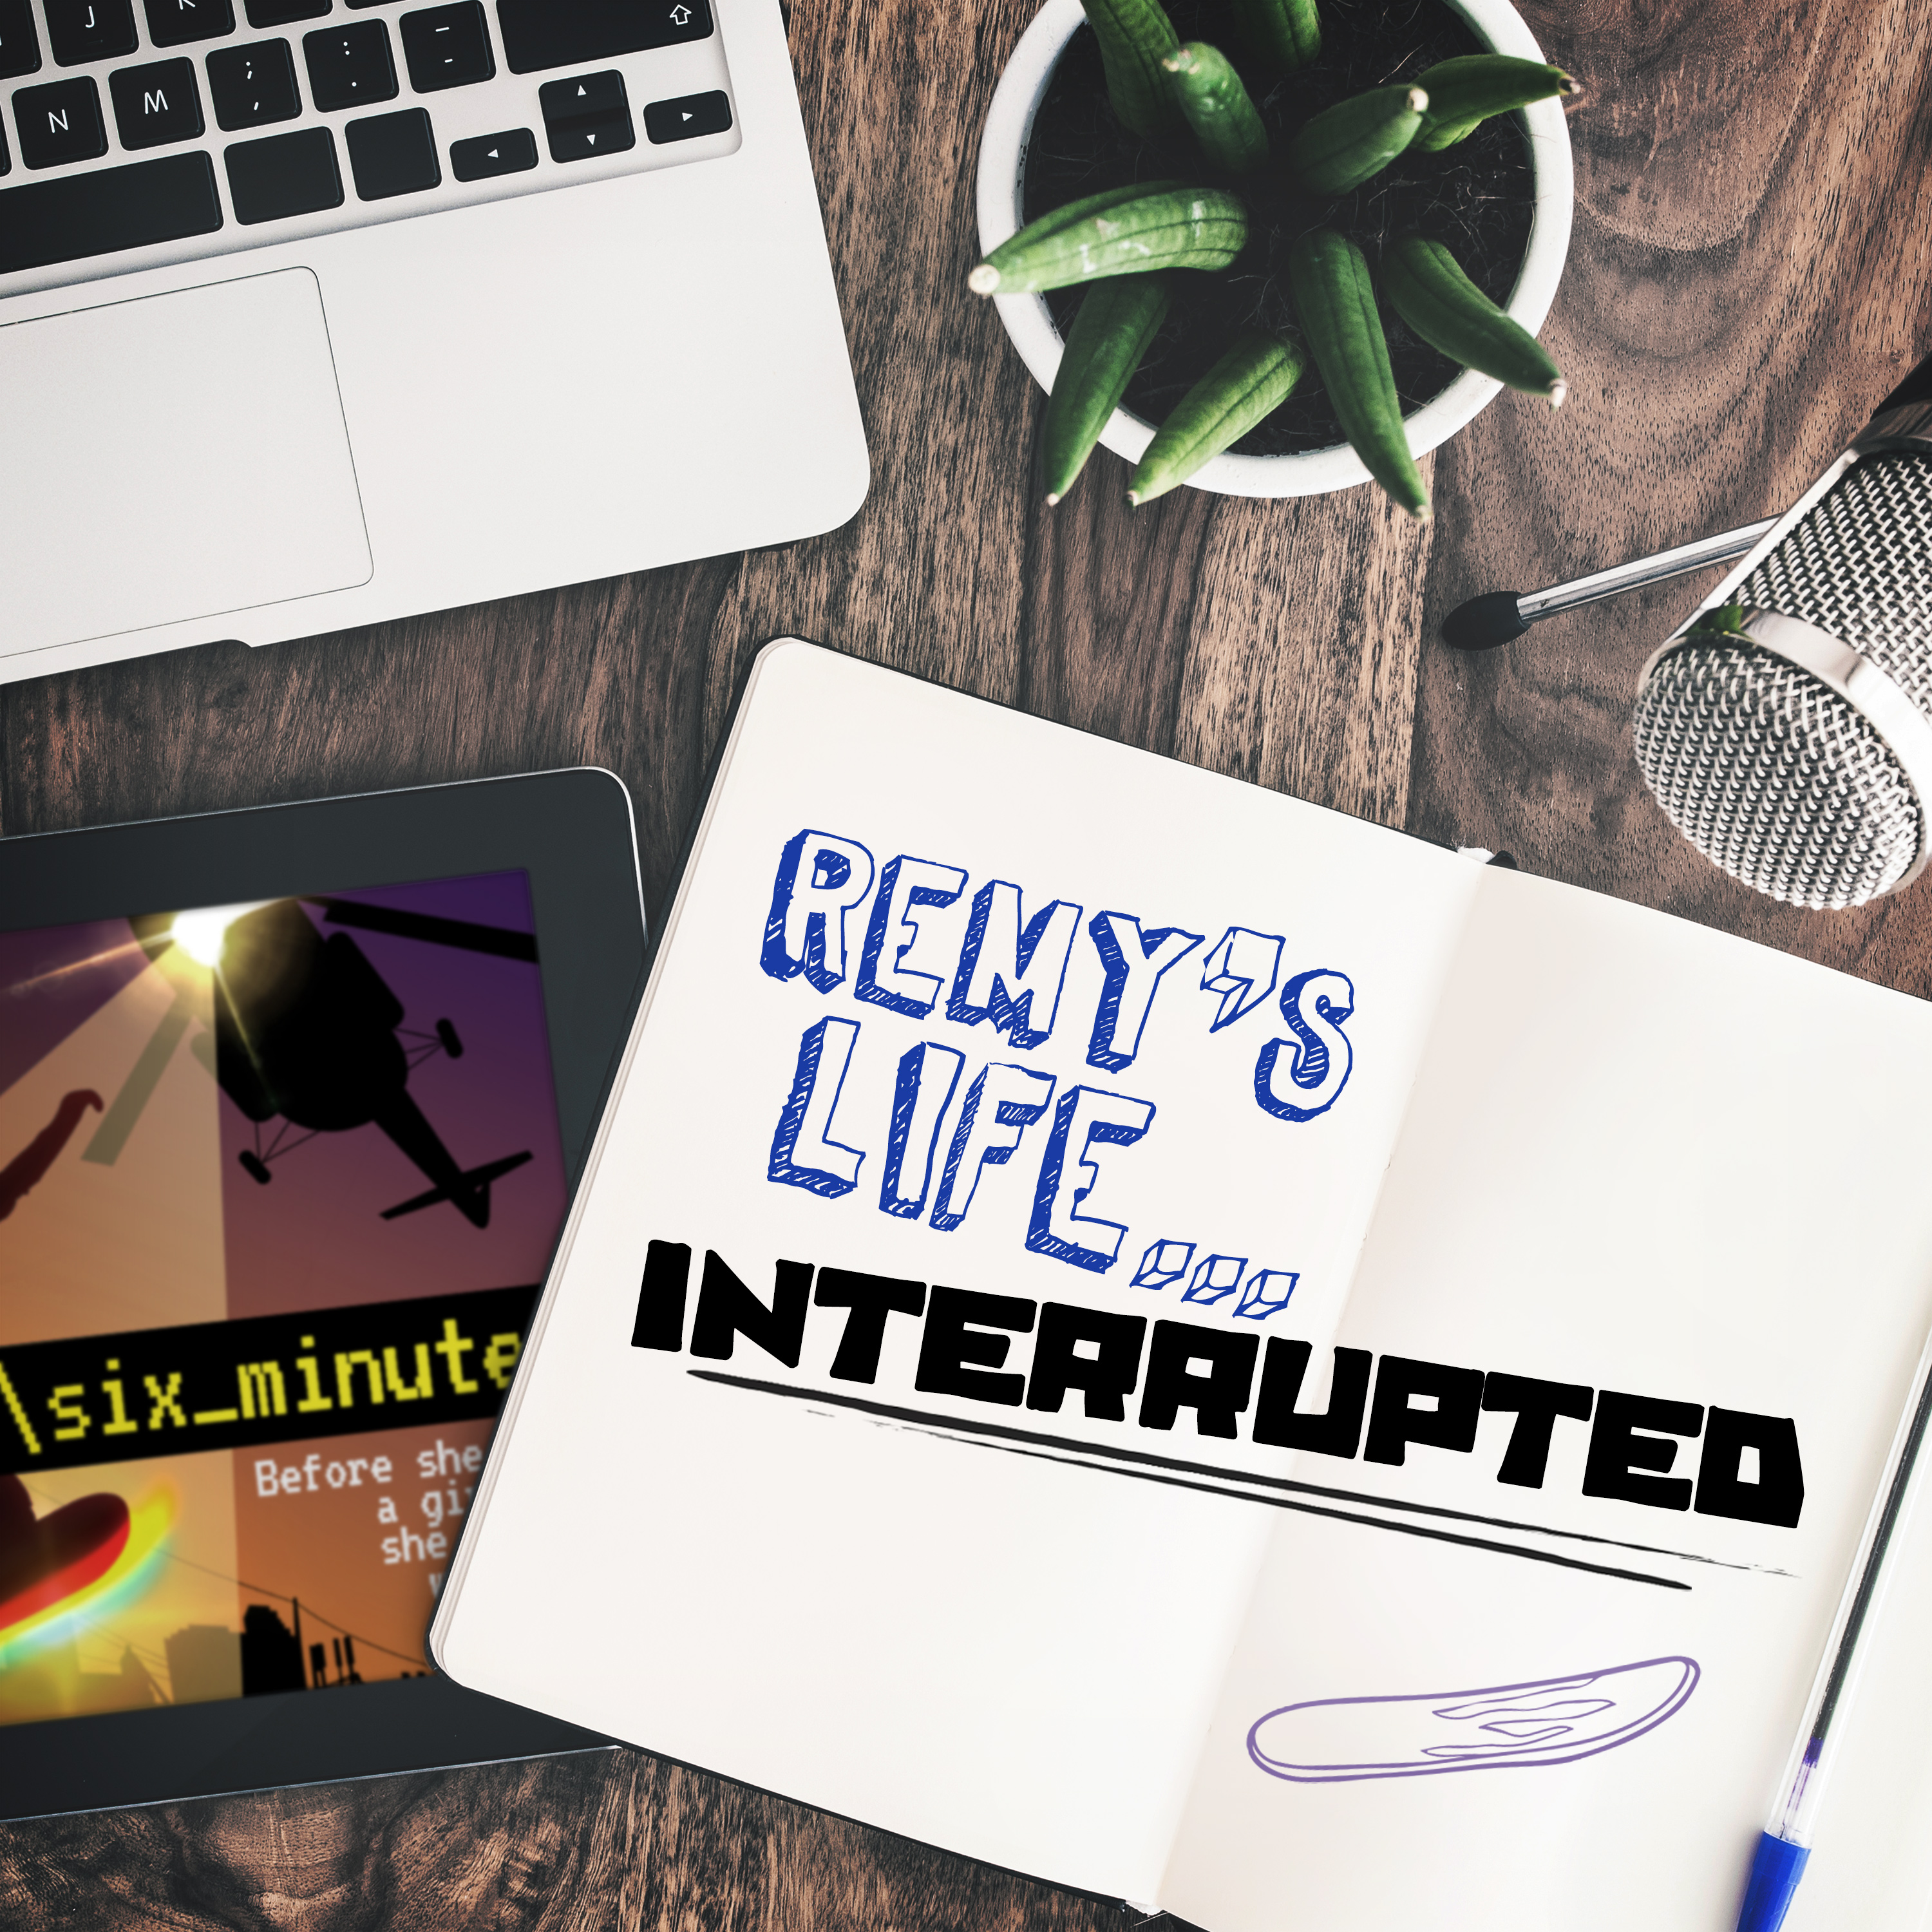 Remy's Life Interrupted: EP88